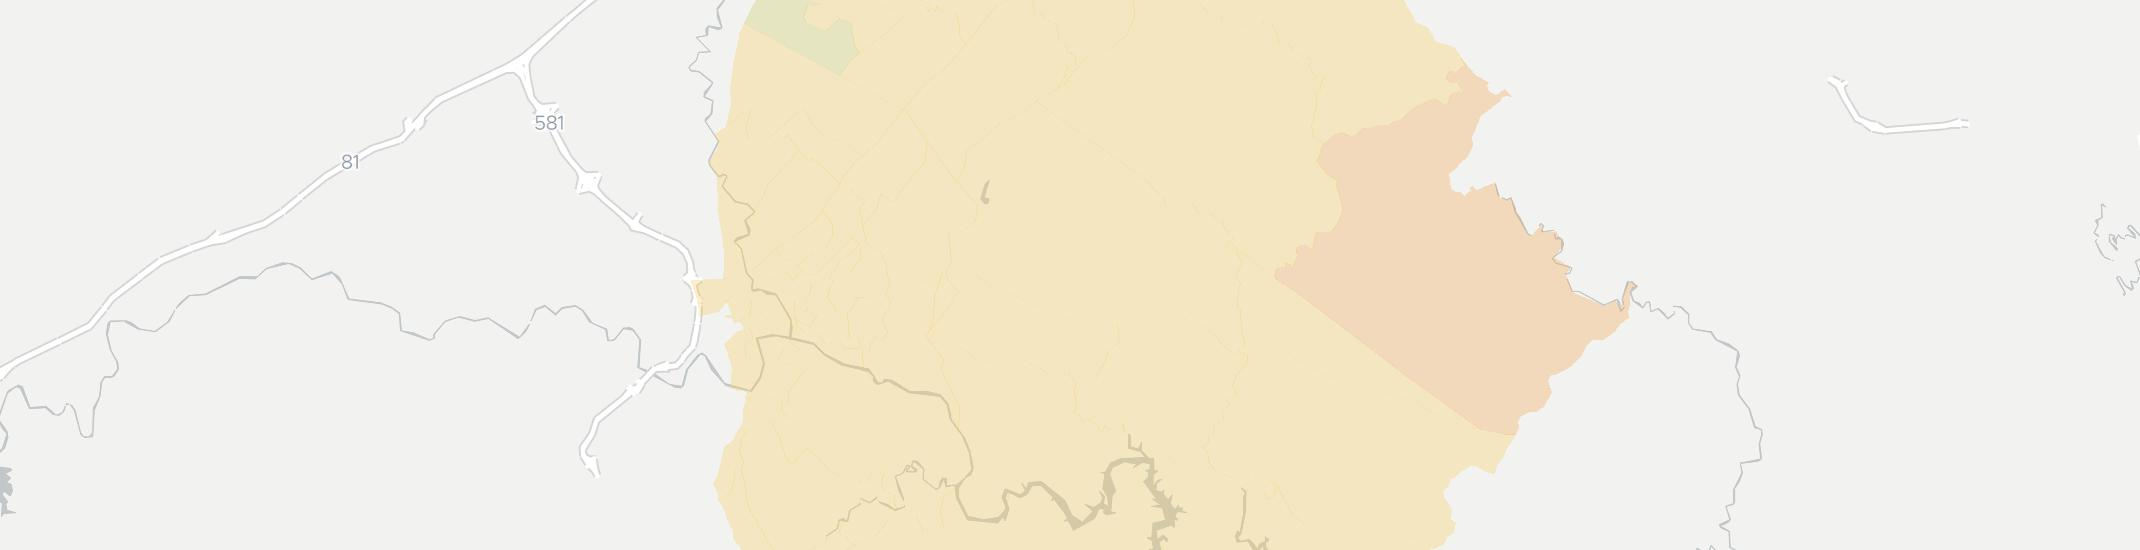 Vinton Internet Competition Map. Click for interactive map.